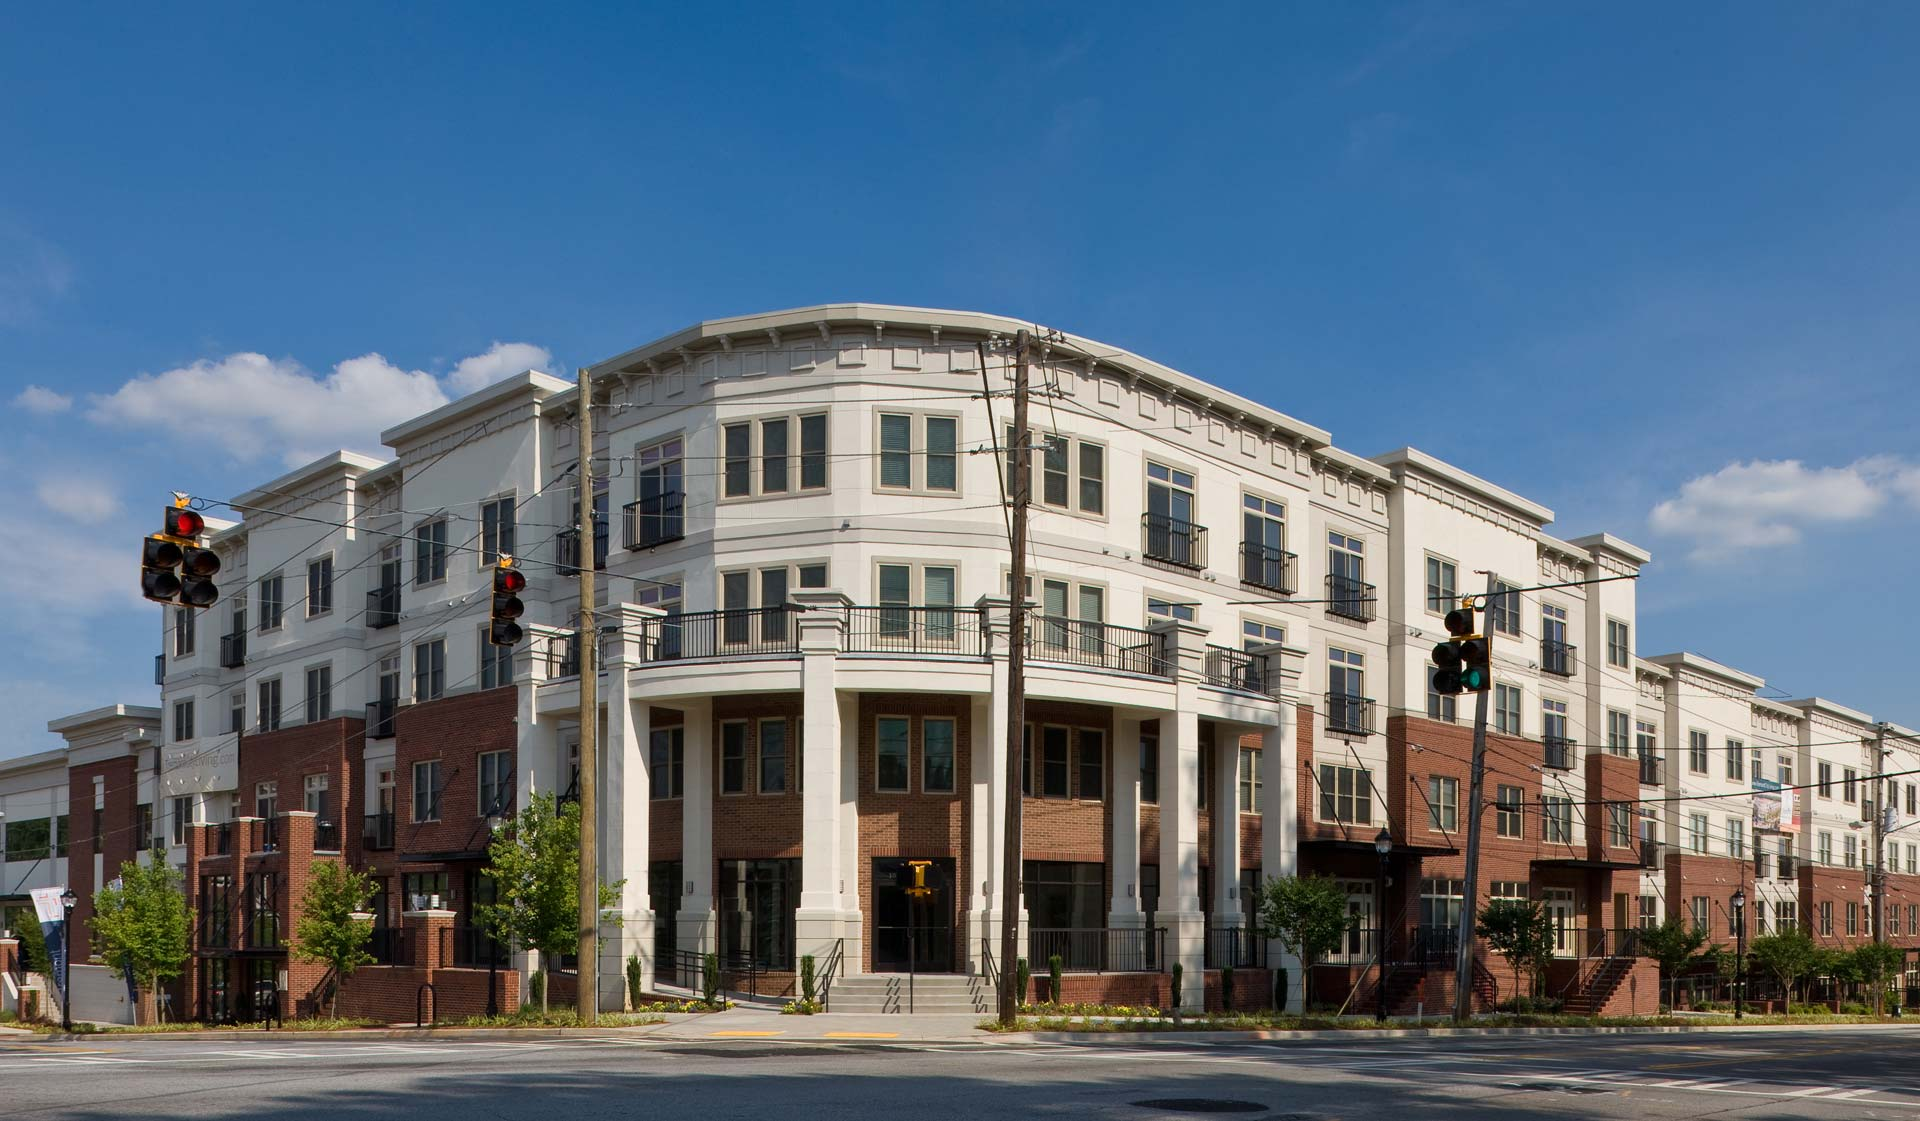 Tremont Apartment Homes in Atlanta, GA - 1- and 2-bedrooms available for rent